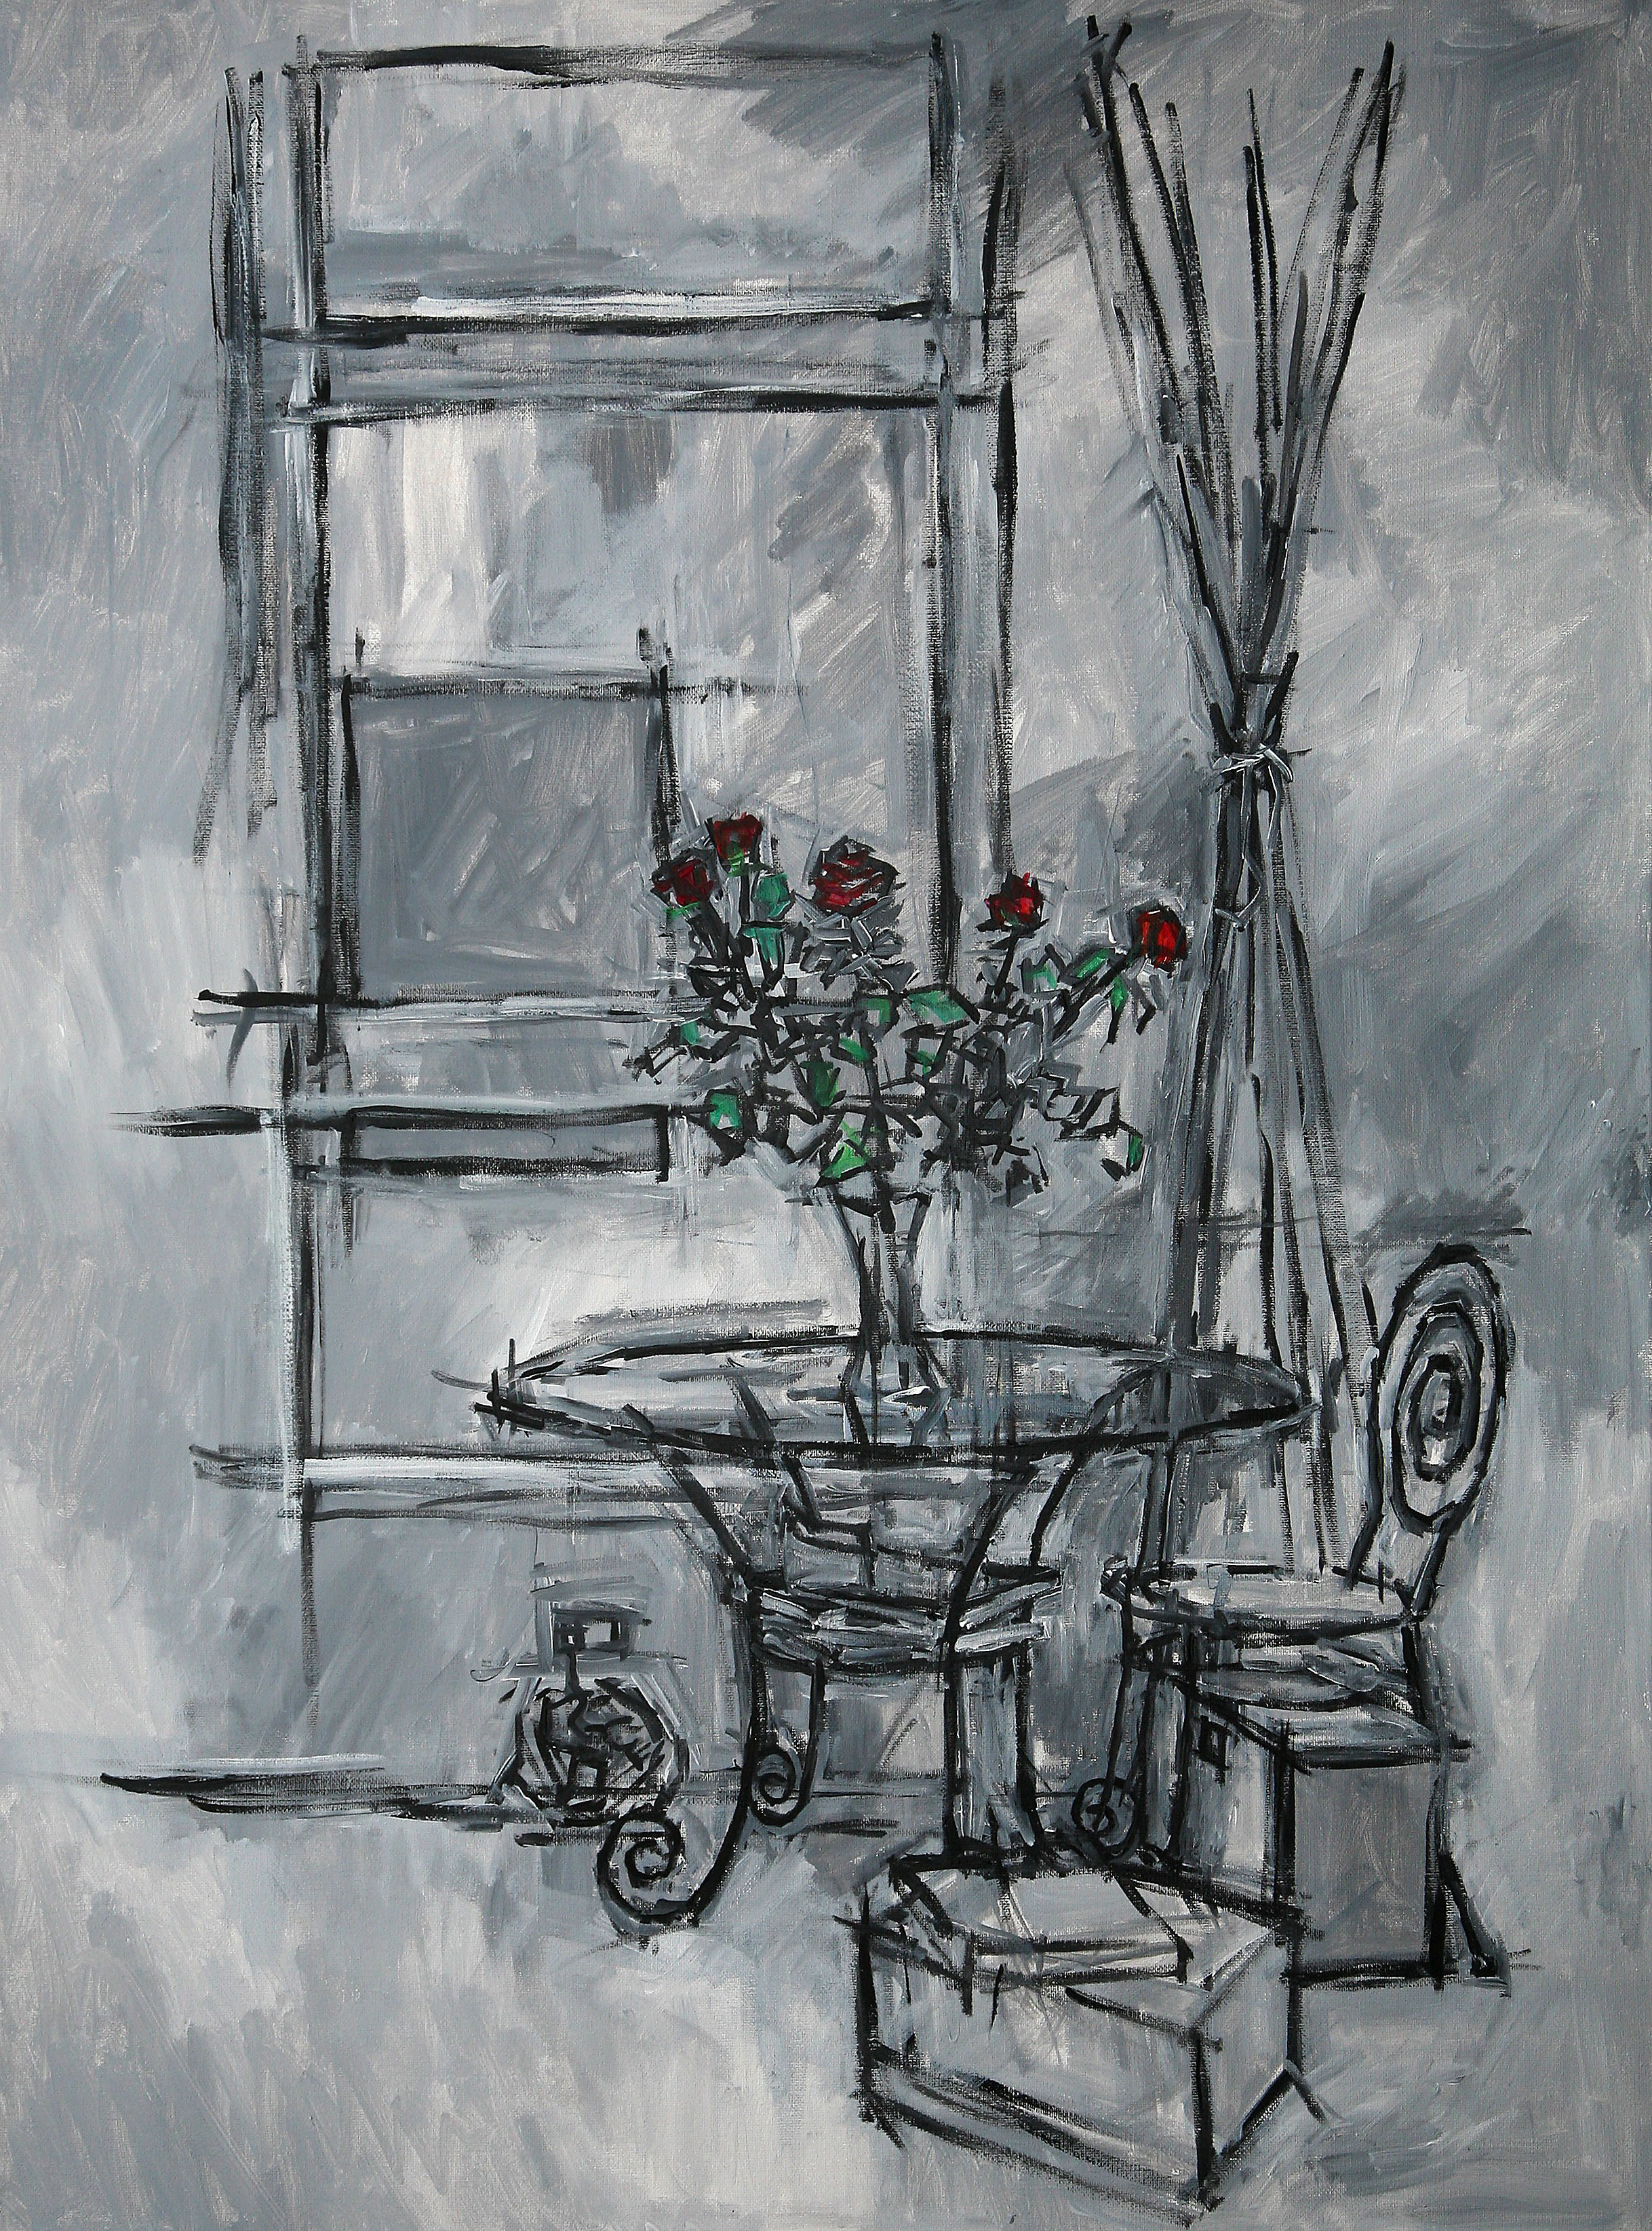 Abst  ract Roses Pimlico   acrylic on canvas  60 by 80 by 1.75 cm  unframed  £750